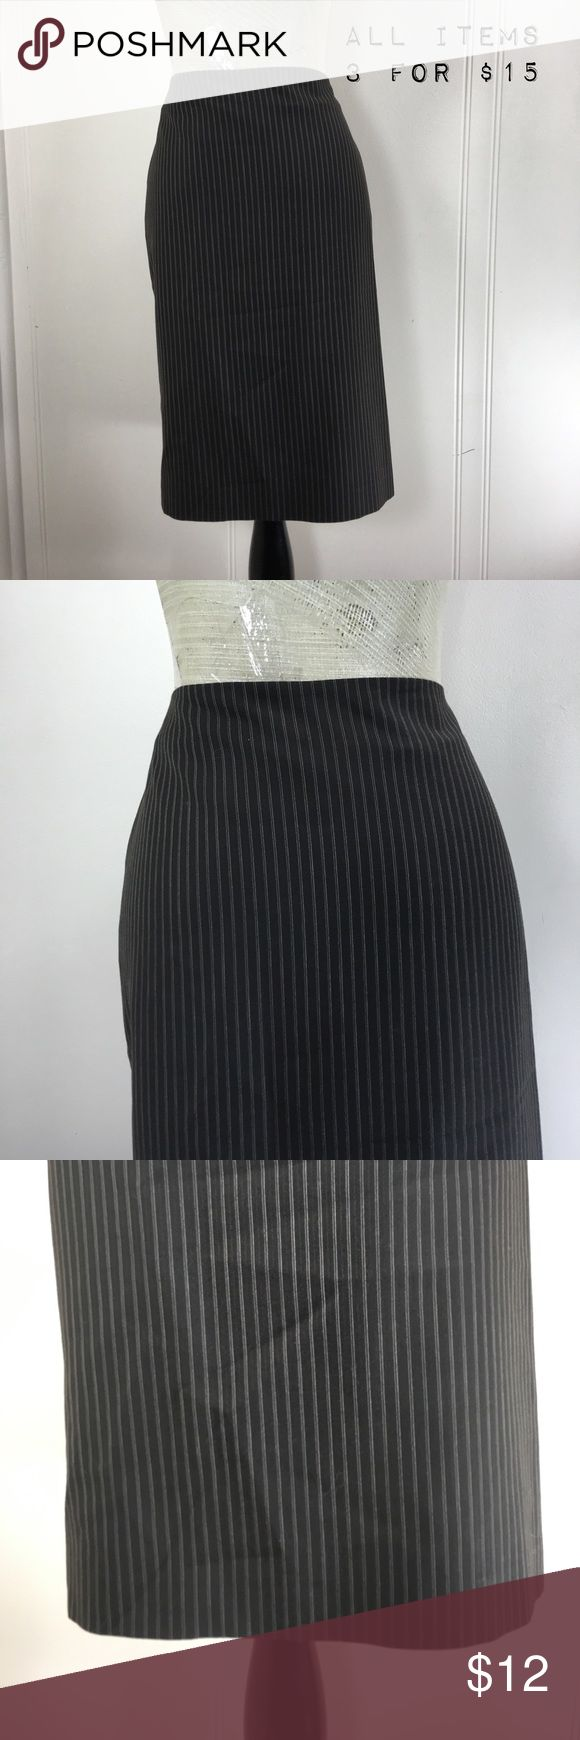 "Ann Taylor Chocolate Brown Pinstriped Pencil Skirt Preowned condition. No stains or holes. Normal wash and wear.             Tag Size: women's 6.                          Waist Flat: 15"". Hips: 19"" Length: 23"".   Form Fitting. No stretch.                     Please go off measurements and NOT Tag Size. Sizes differ from company to company. I 💜questions! Please ask any and all questions before purchasing.   Thanks! ~Rag Time Machine.~ Ann Taylor Skirts Pencil"